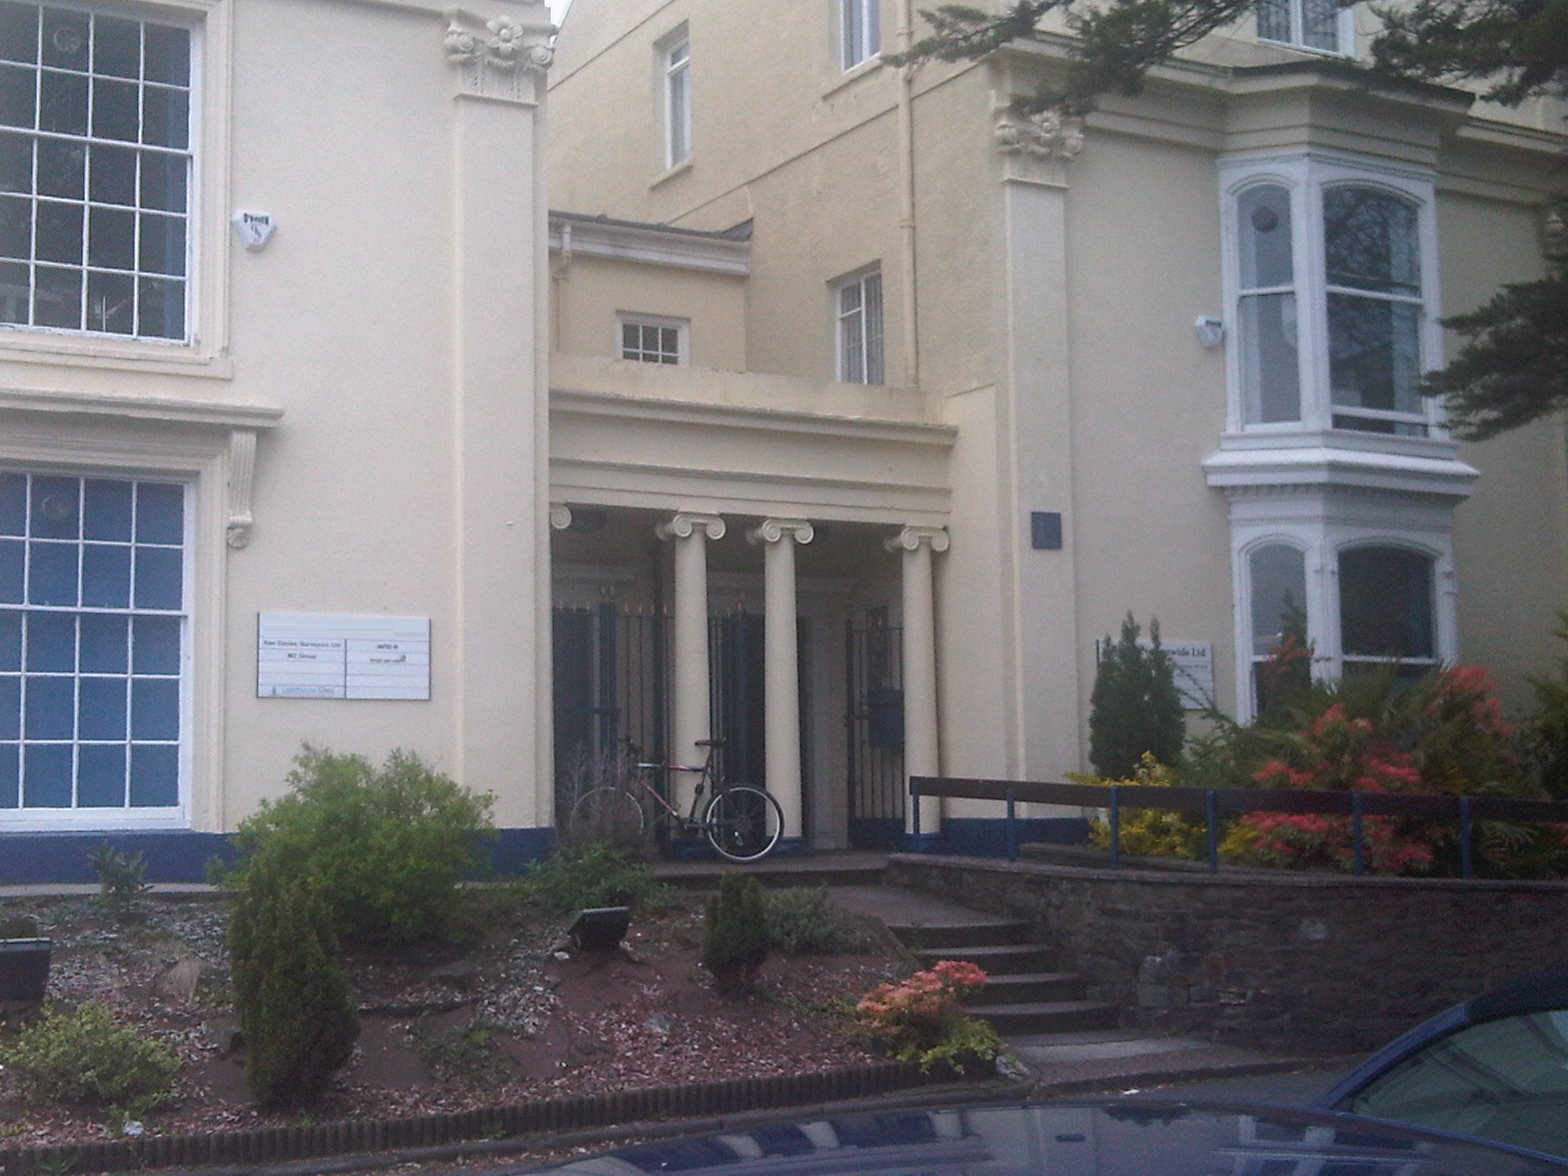 Swan House Business Centre - 146-147 St Helens's Road, SA1 - Swansea